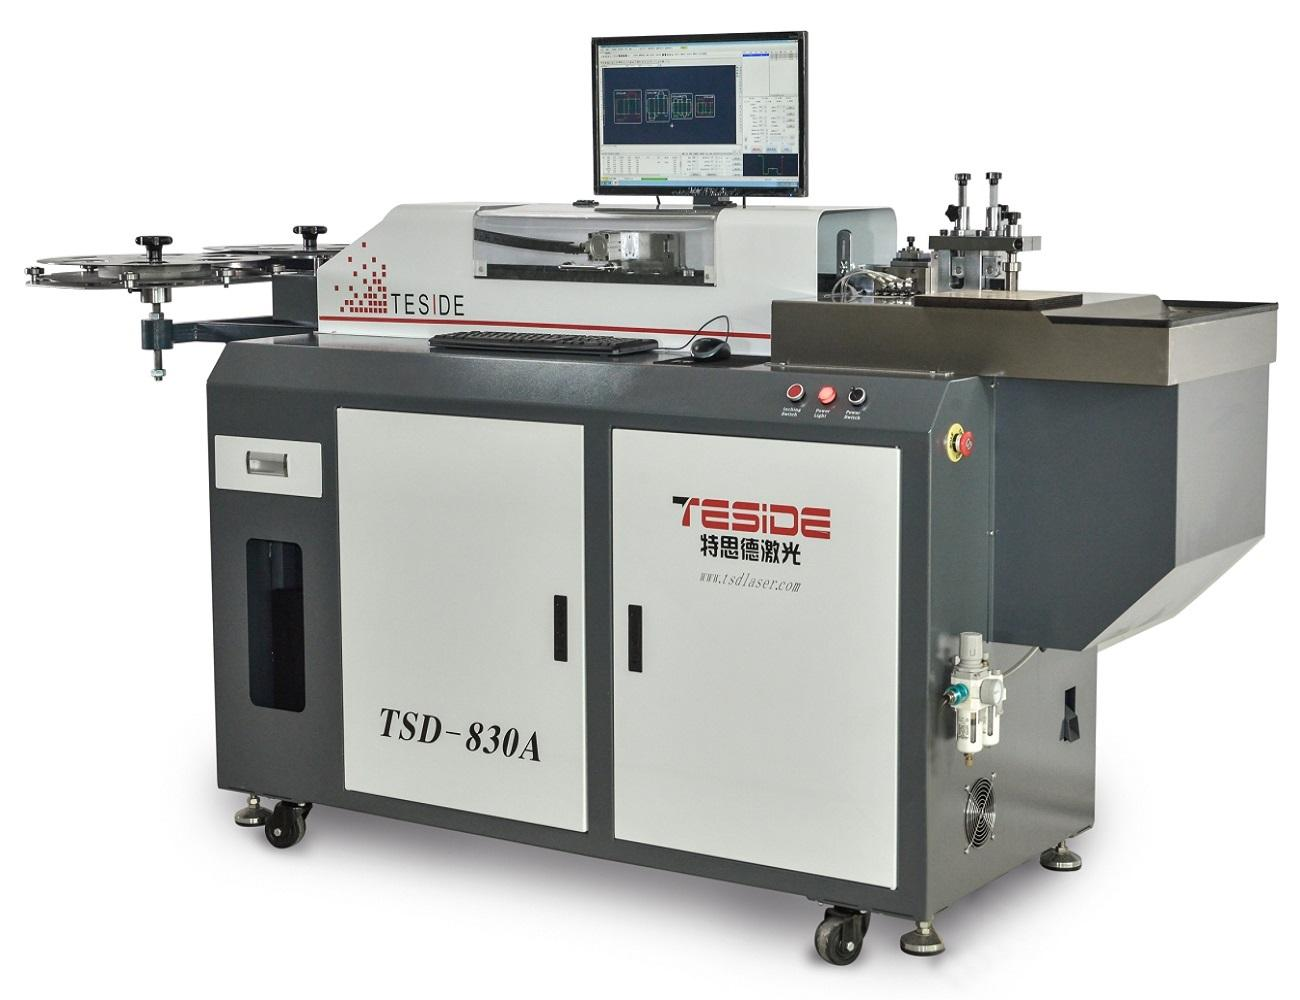 Automatic Stirrup Bender Machine/Cnc Machine For Bending And Cutting/Auto Bending Machine For Die Cutting